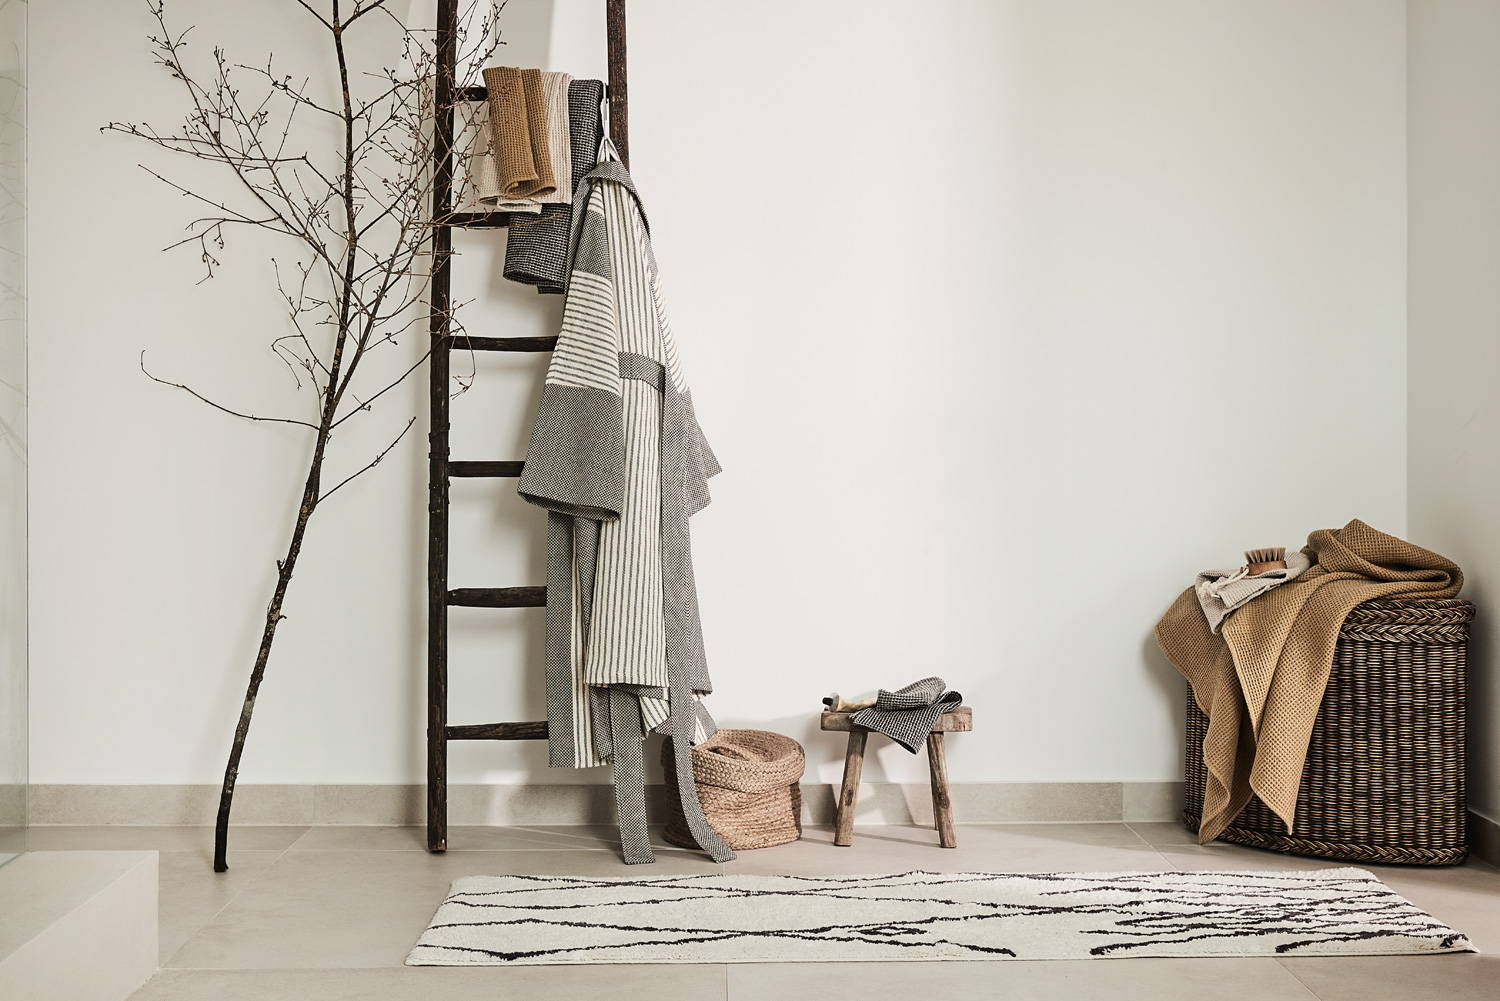 Lagom interior decor with beni rug, ladder, bathrobe, towels and rattan basket